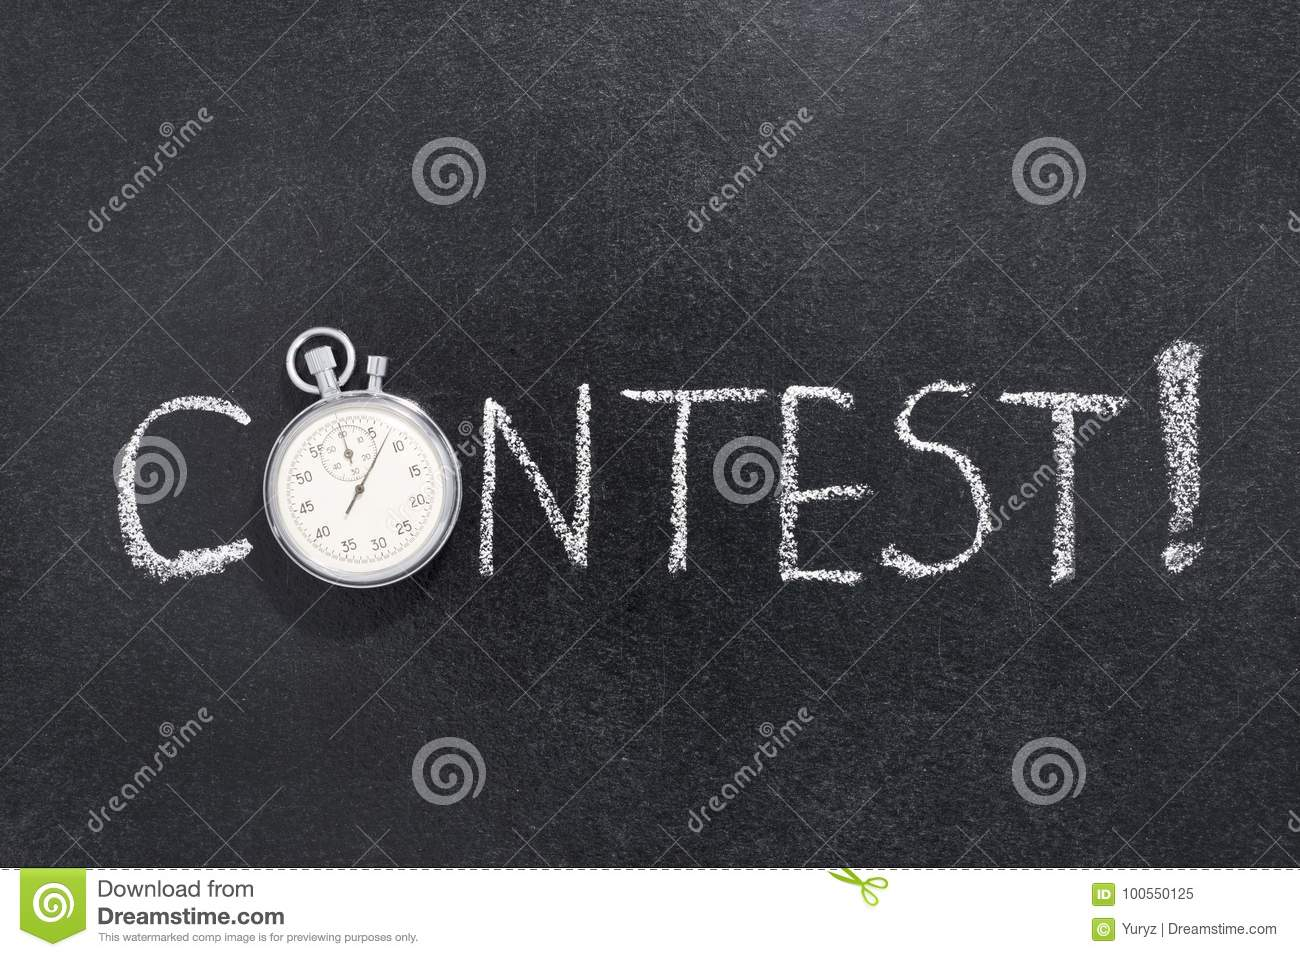 Contest word watch